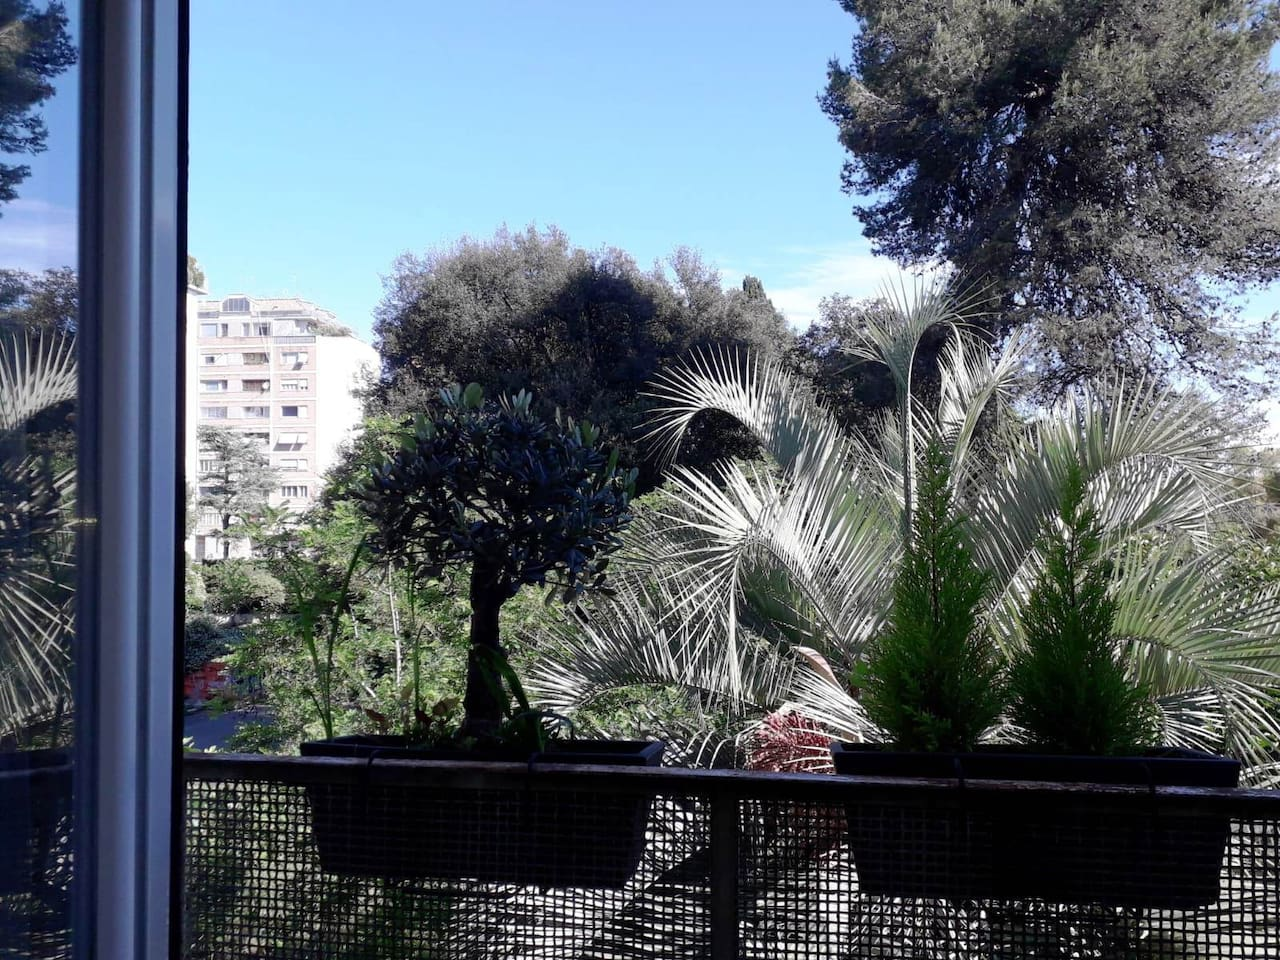 A 5 Star Rewied Room with a view in central Rome, quite rare all this nice trees in central Rome but this is how it is, in the morning you can wake up with the birds singing on trees. You are just 10 minutes journey from People Sq.! Relax guaranteed!